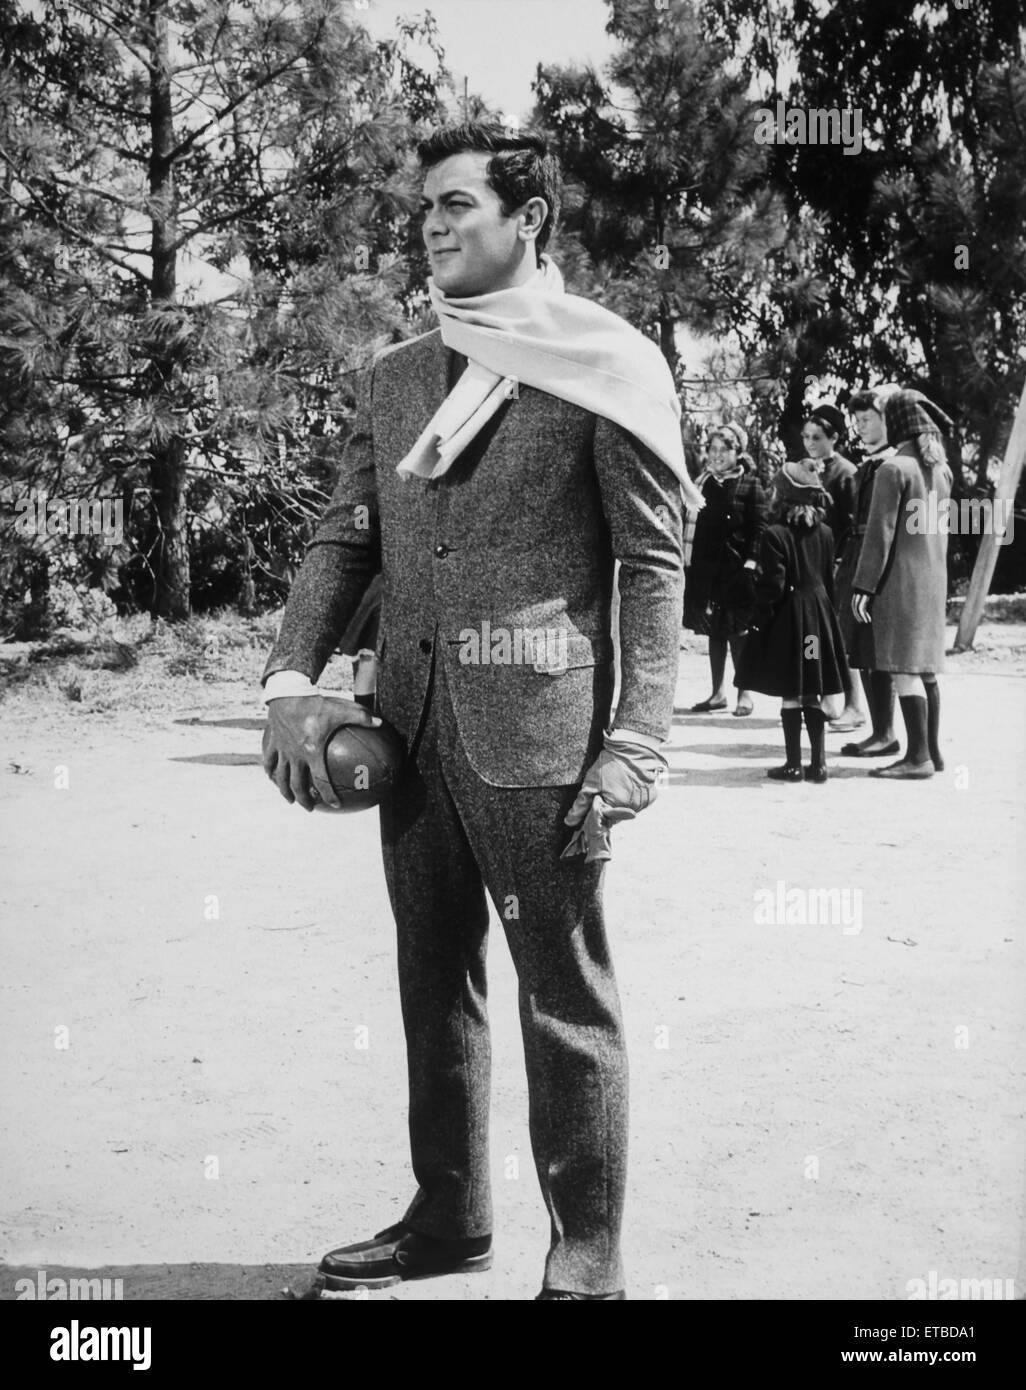 Tony Curtis, on-set of the Film 'The Great Impostor', 1961 - Stock Image